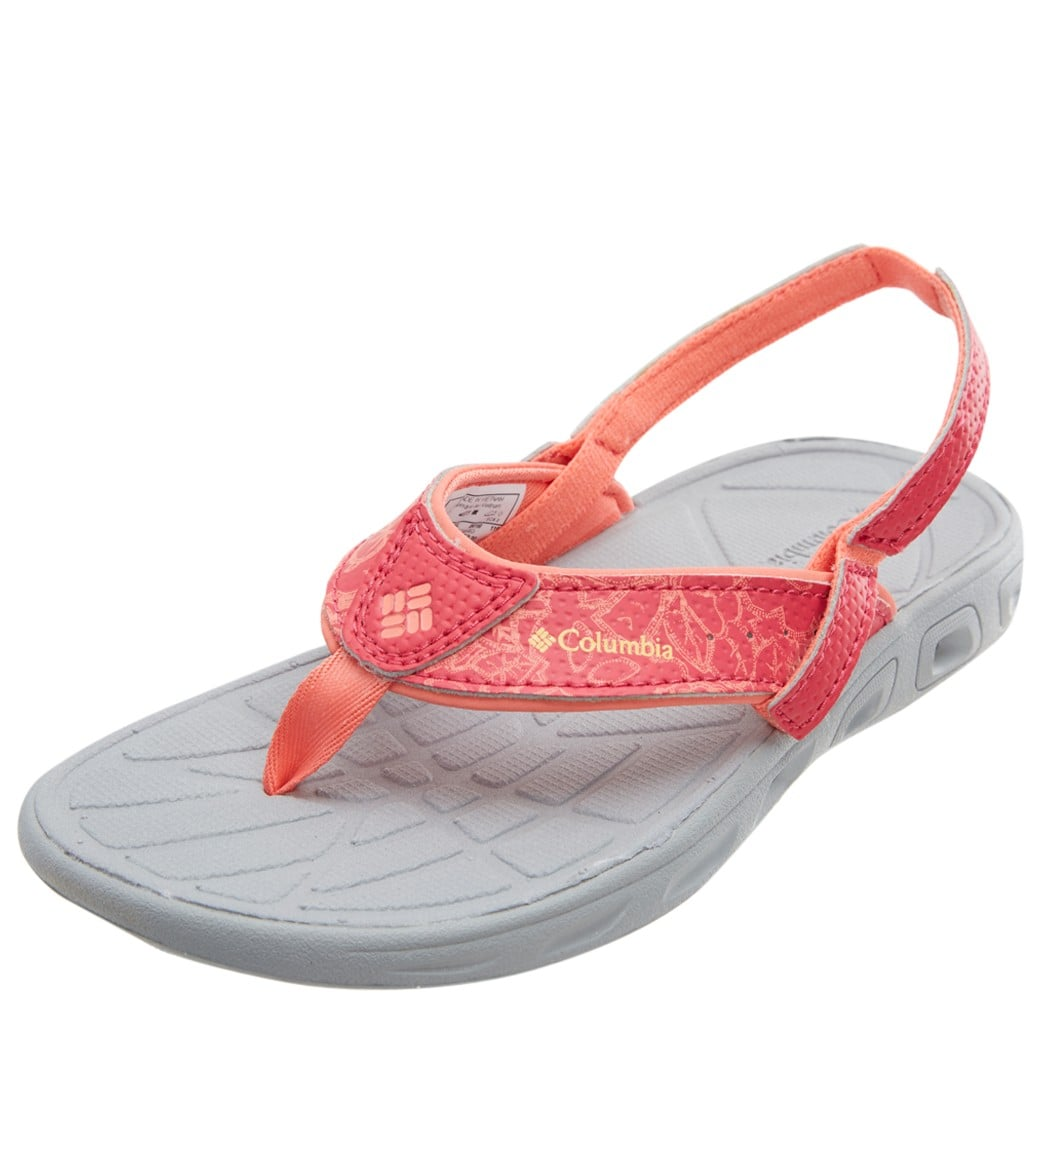 0c2563286 Columbia Kid s Techsun Flip Flop at SwimOutlet.com